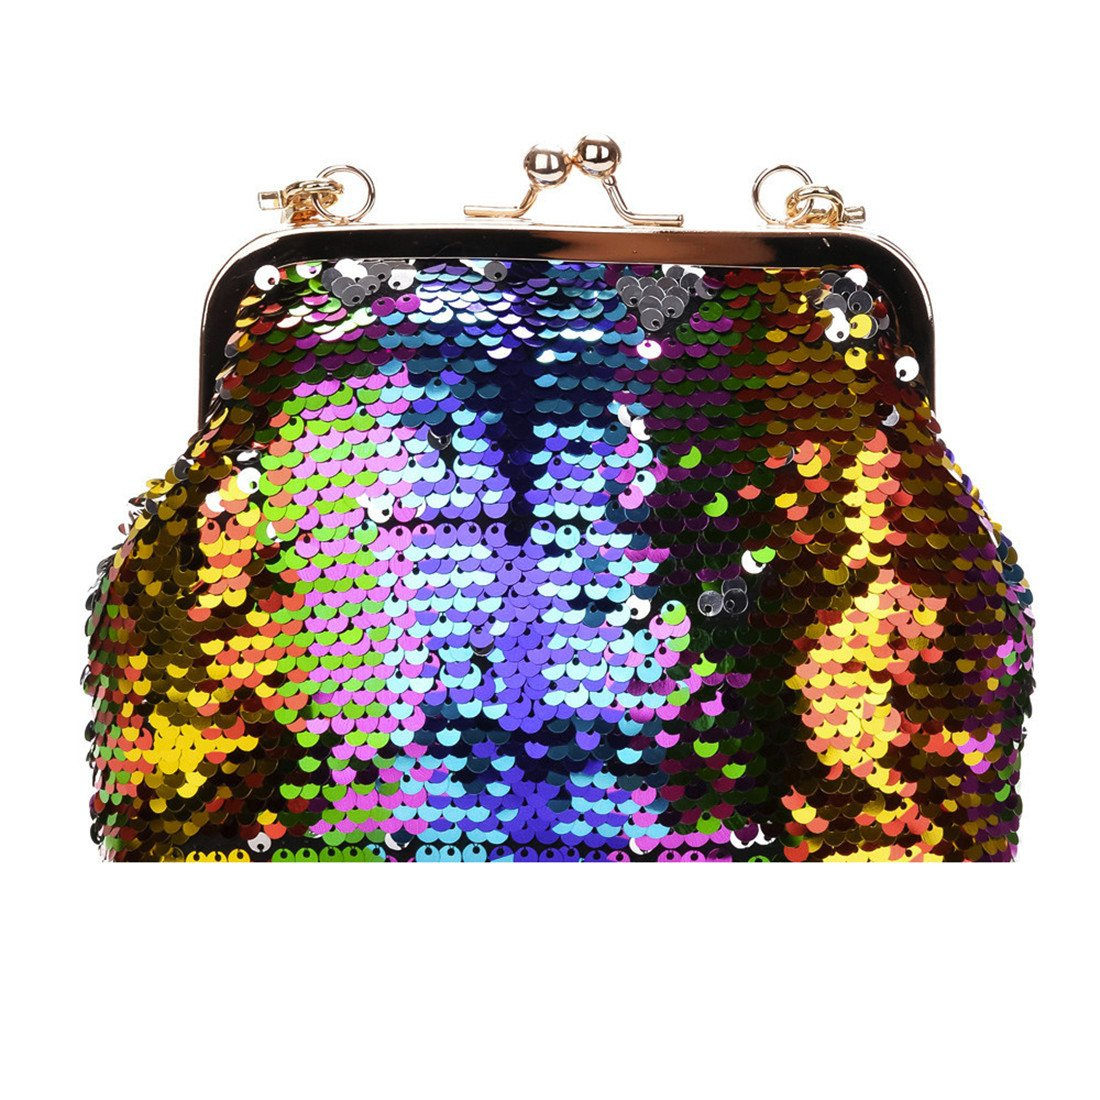 Women Bling Sequins Bucket Bag Shoulder Bags /Crossbody, Luca Travel Backpack Rucksack School Bucket Bag (Multicolor B)